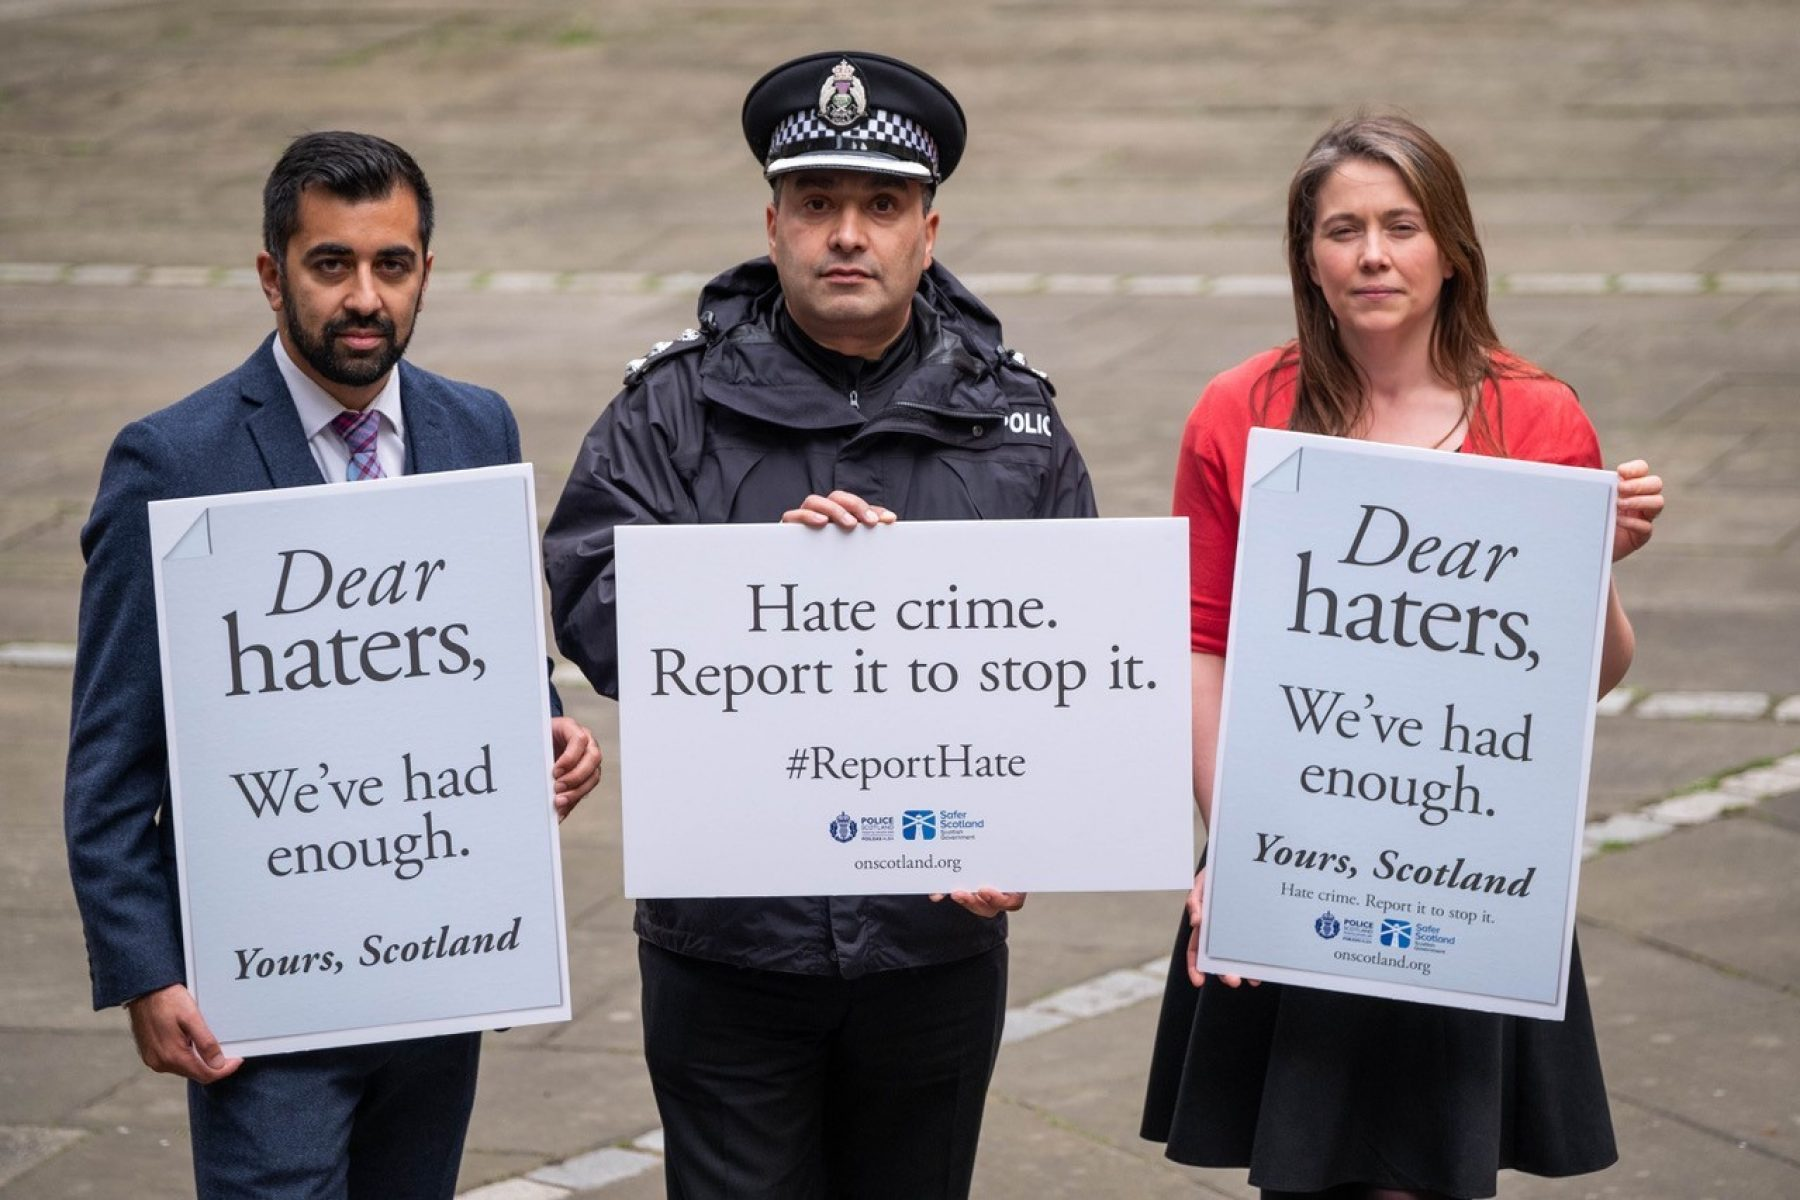 Controversial Scottish hate crime law passes, despite concerns about impact on freedom of speech